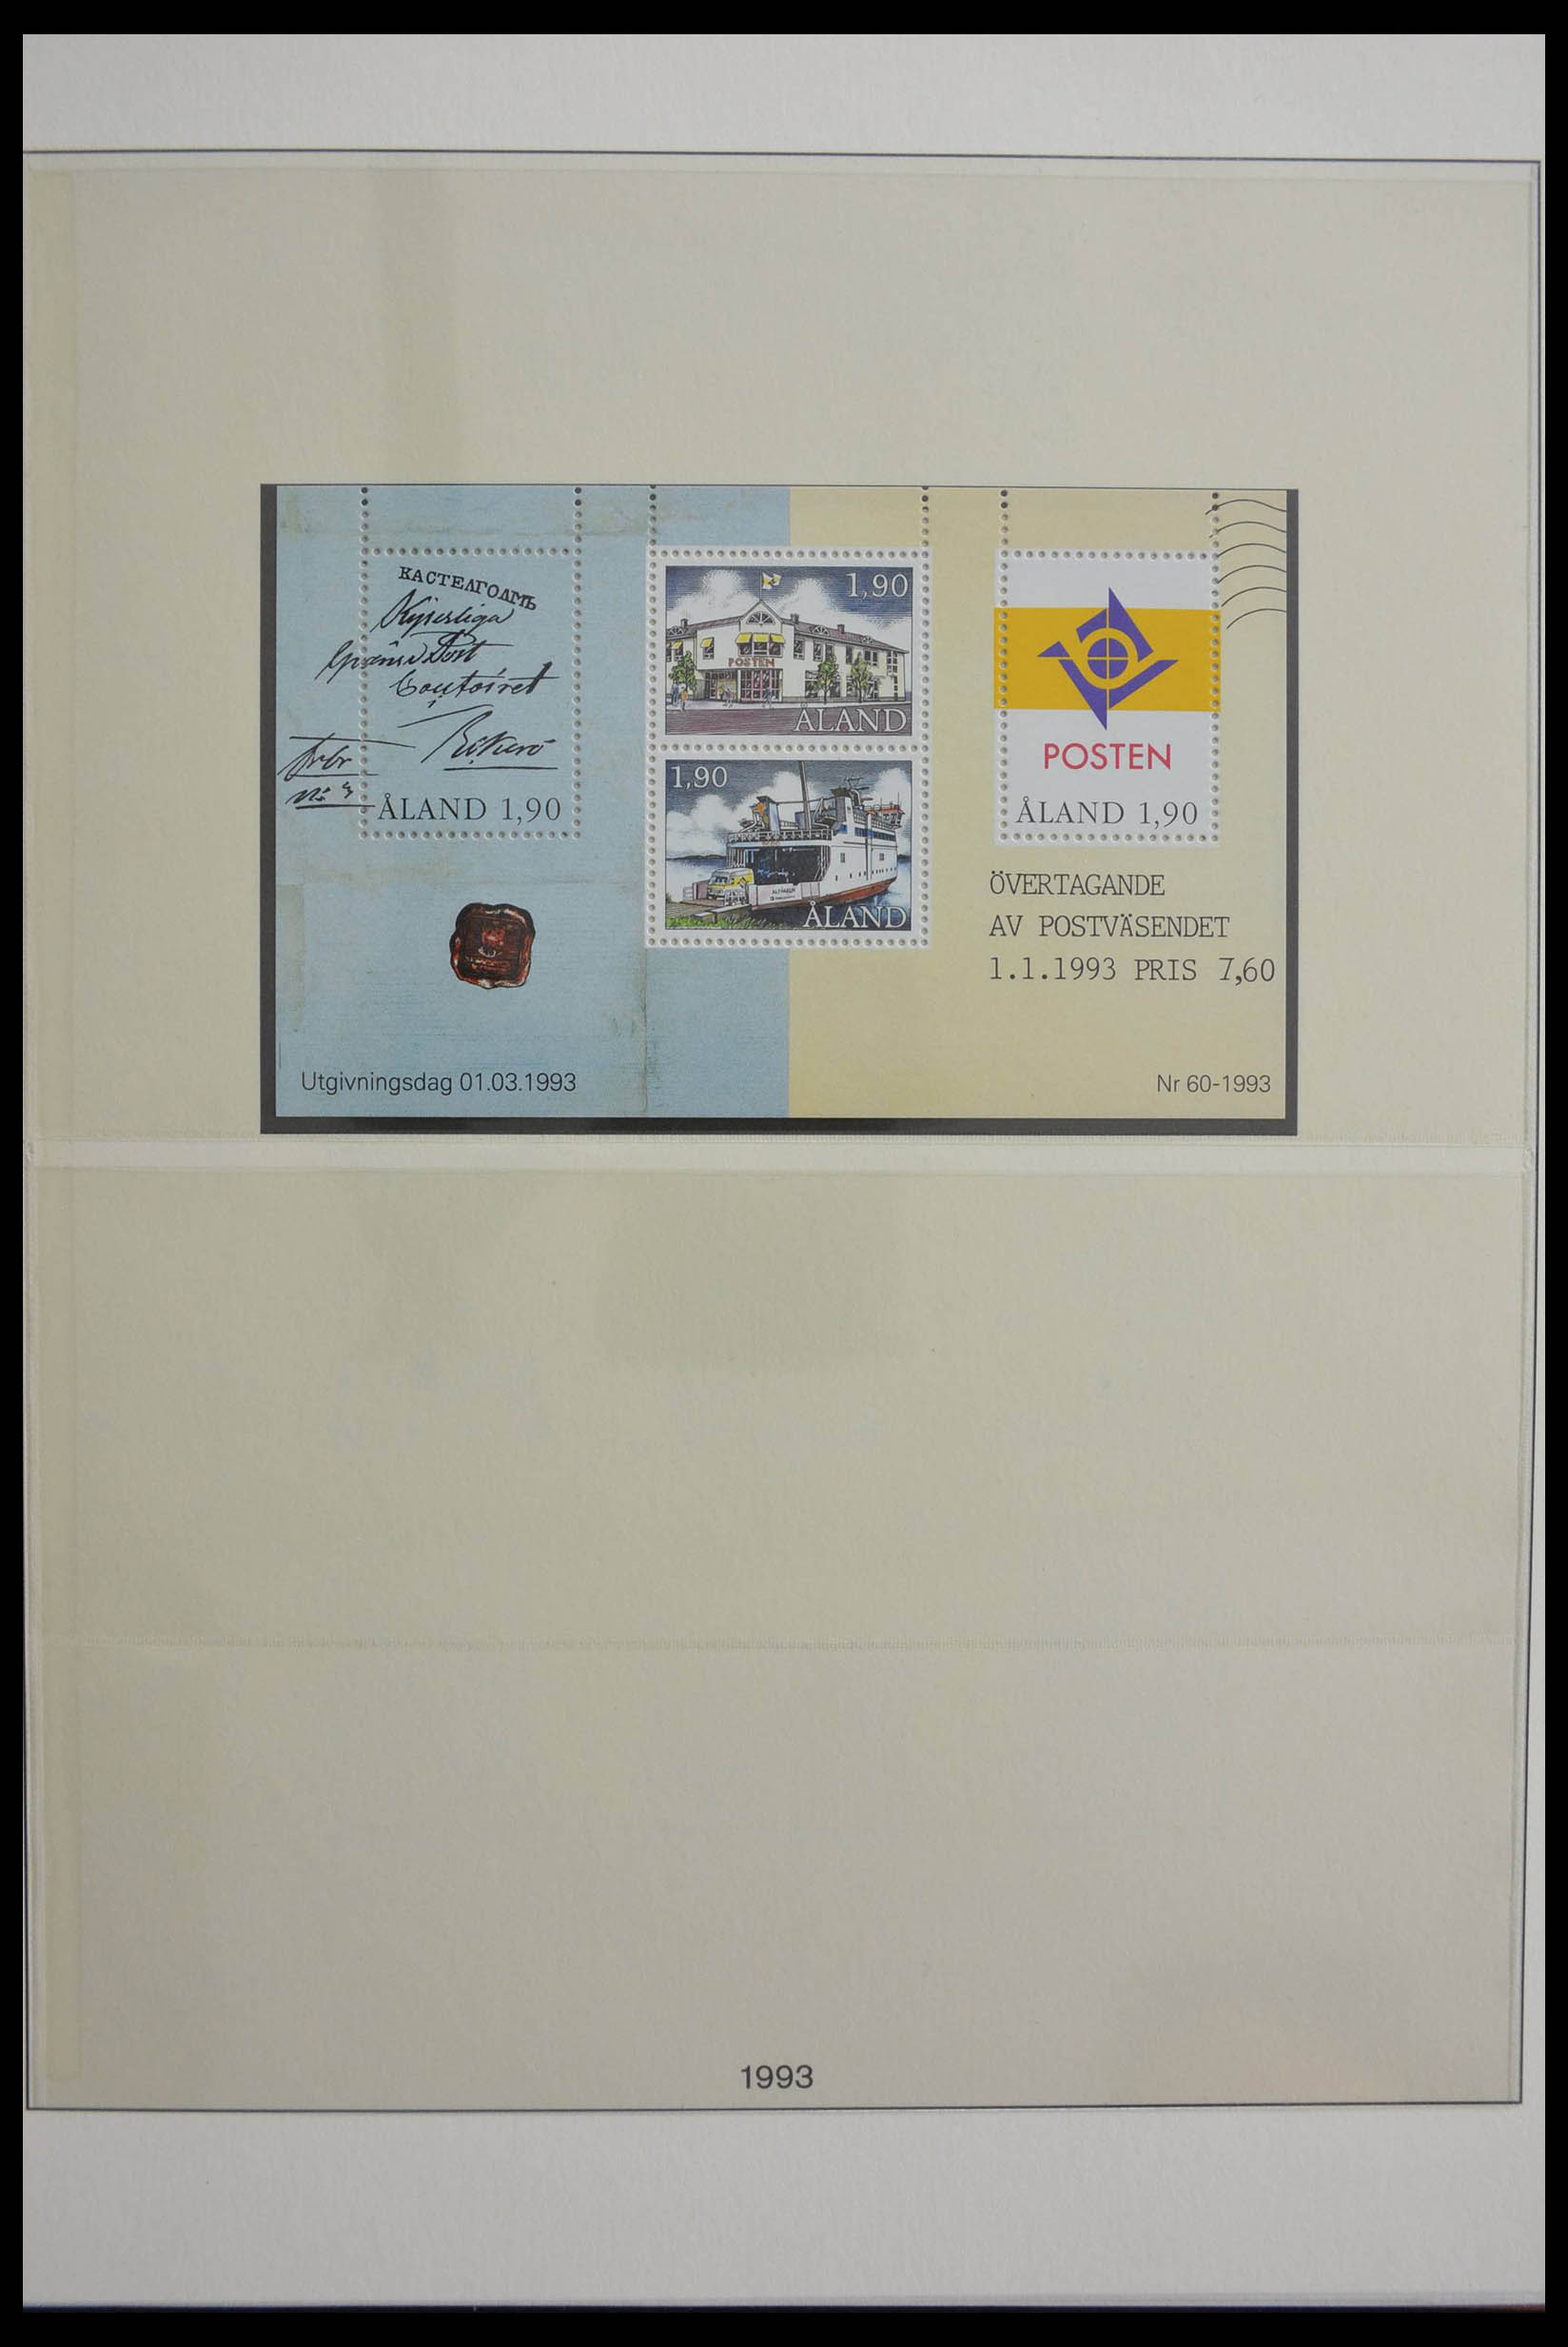 28584 012 - Stamp collection 28584 Aland 1984-2011.